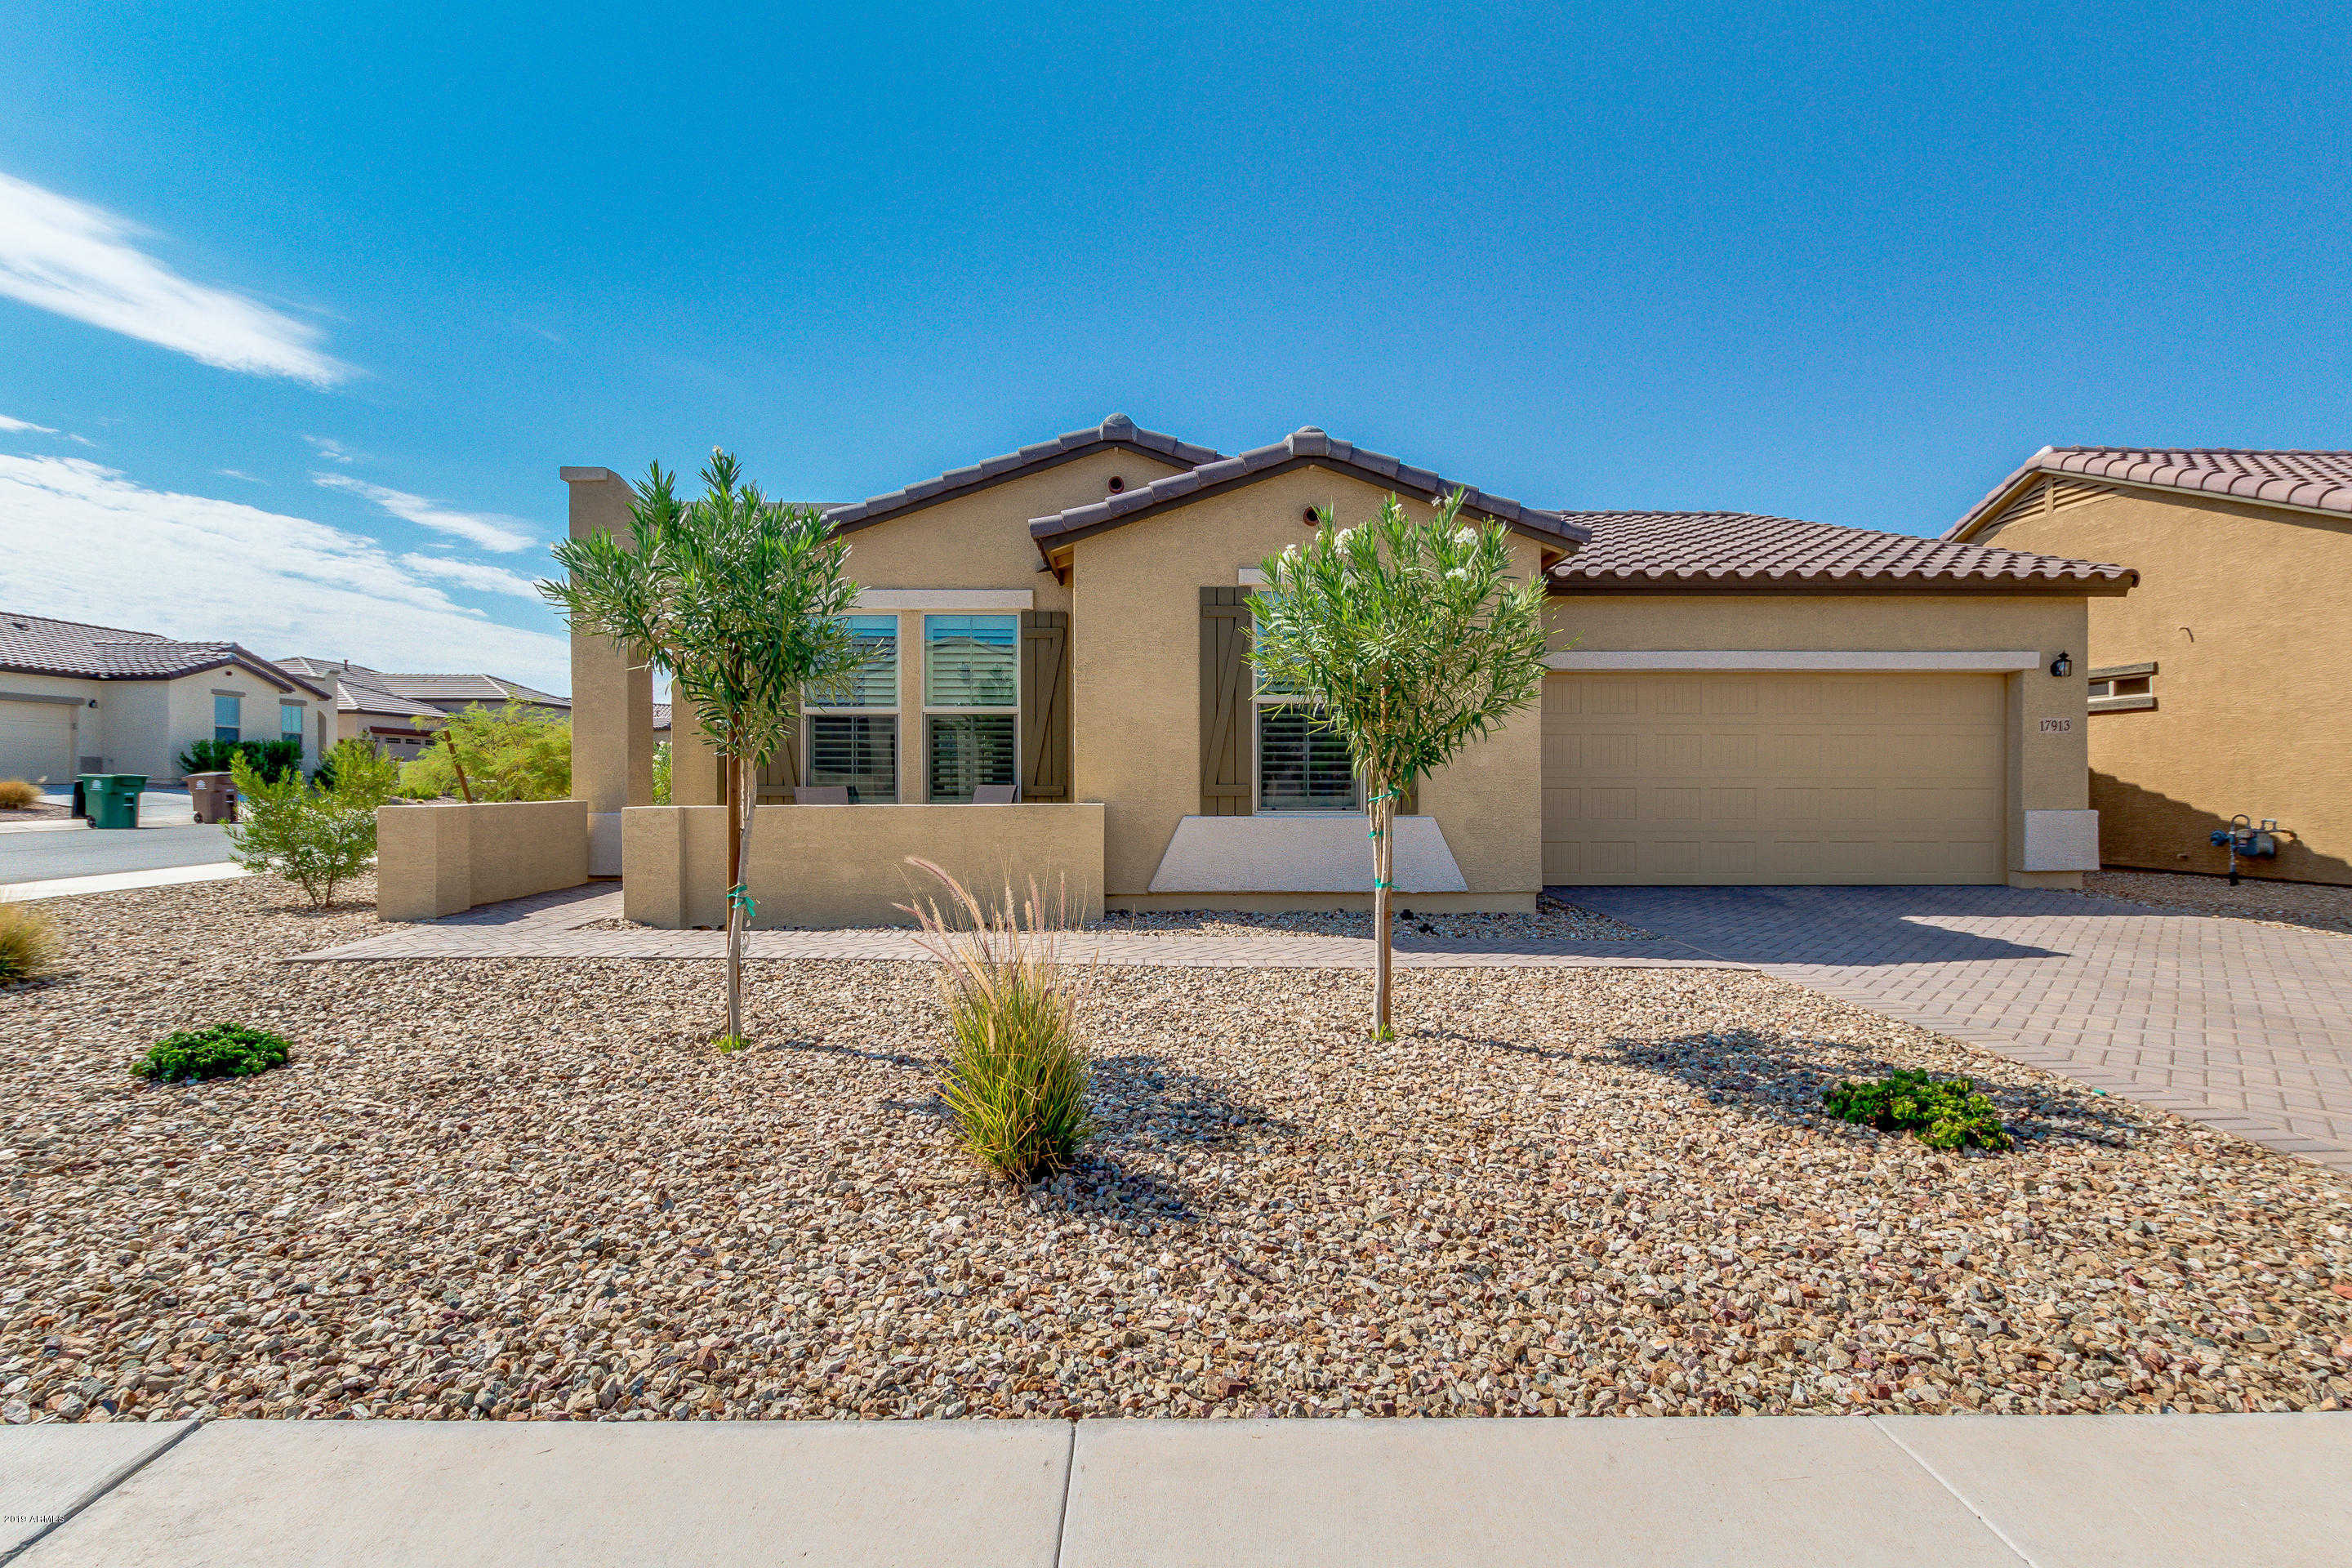 $282,369 - 2Br/2Ba - Home for Sale in Cantamia, Goodyear